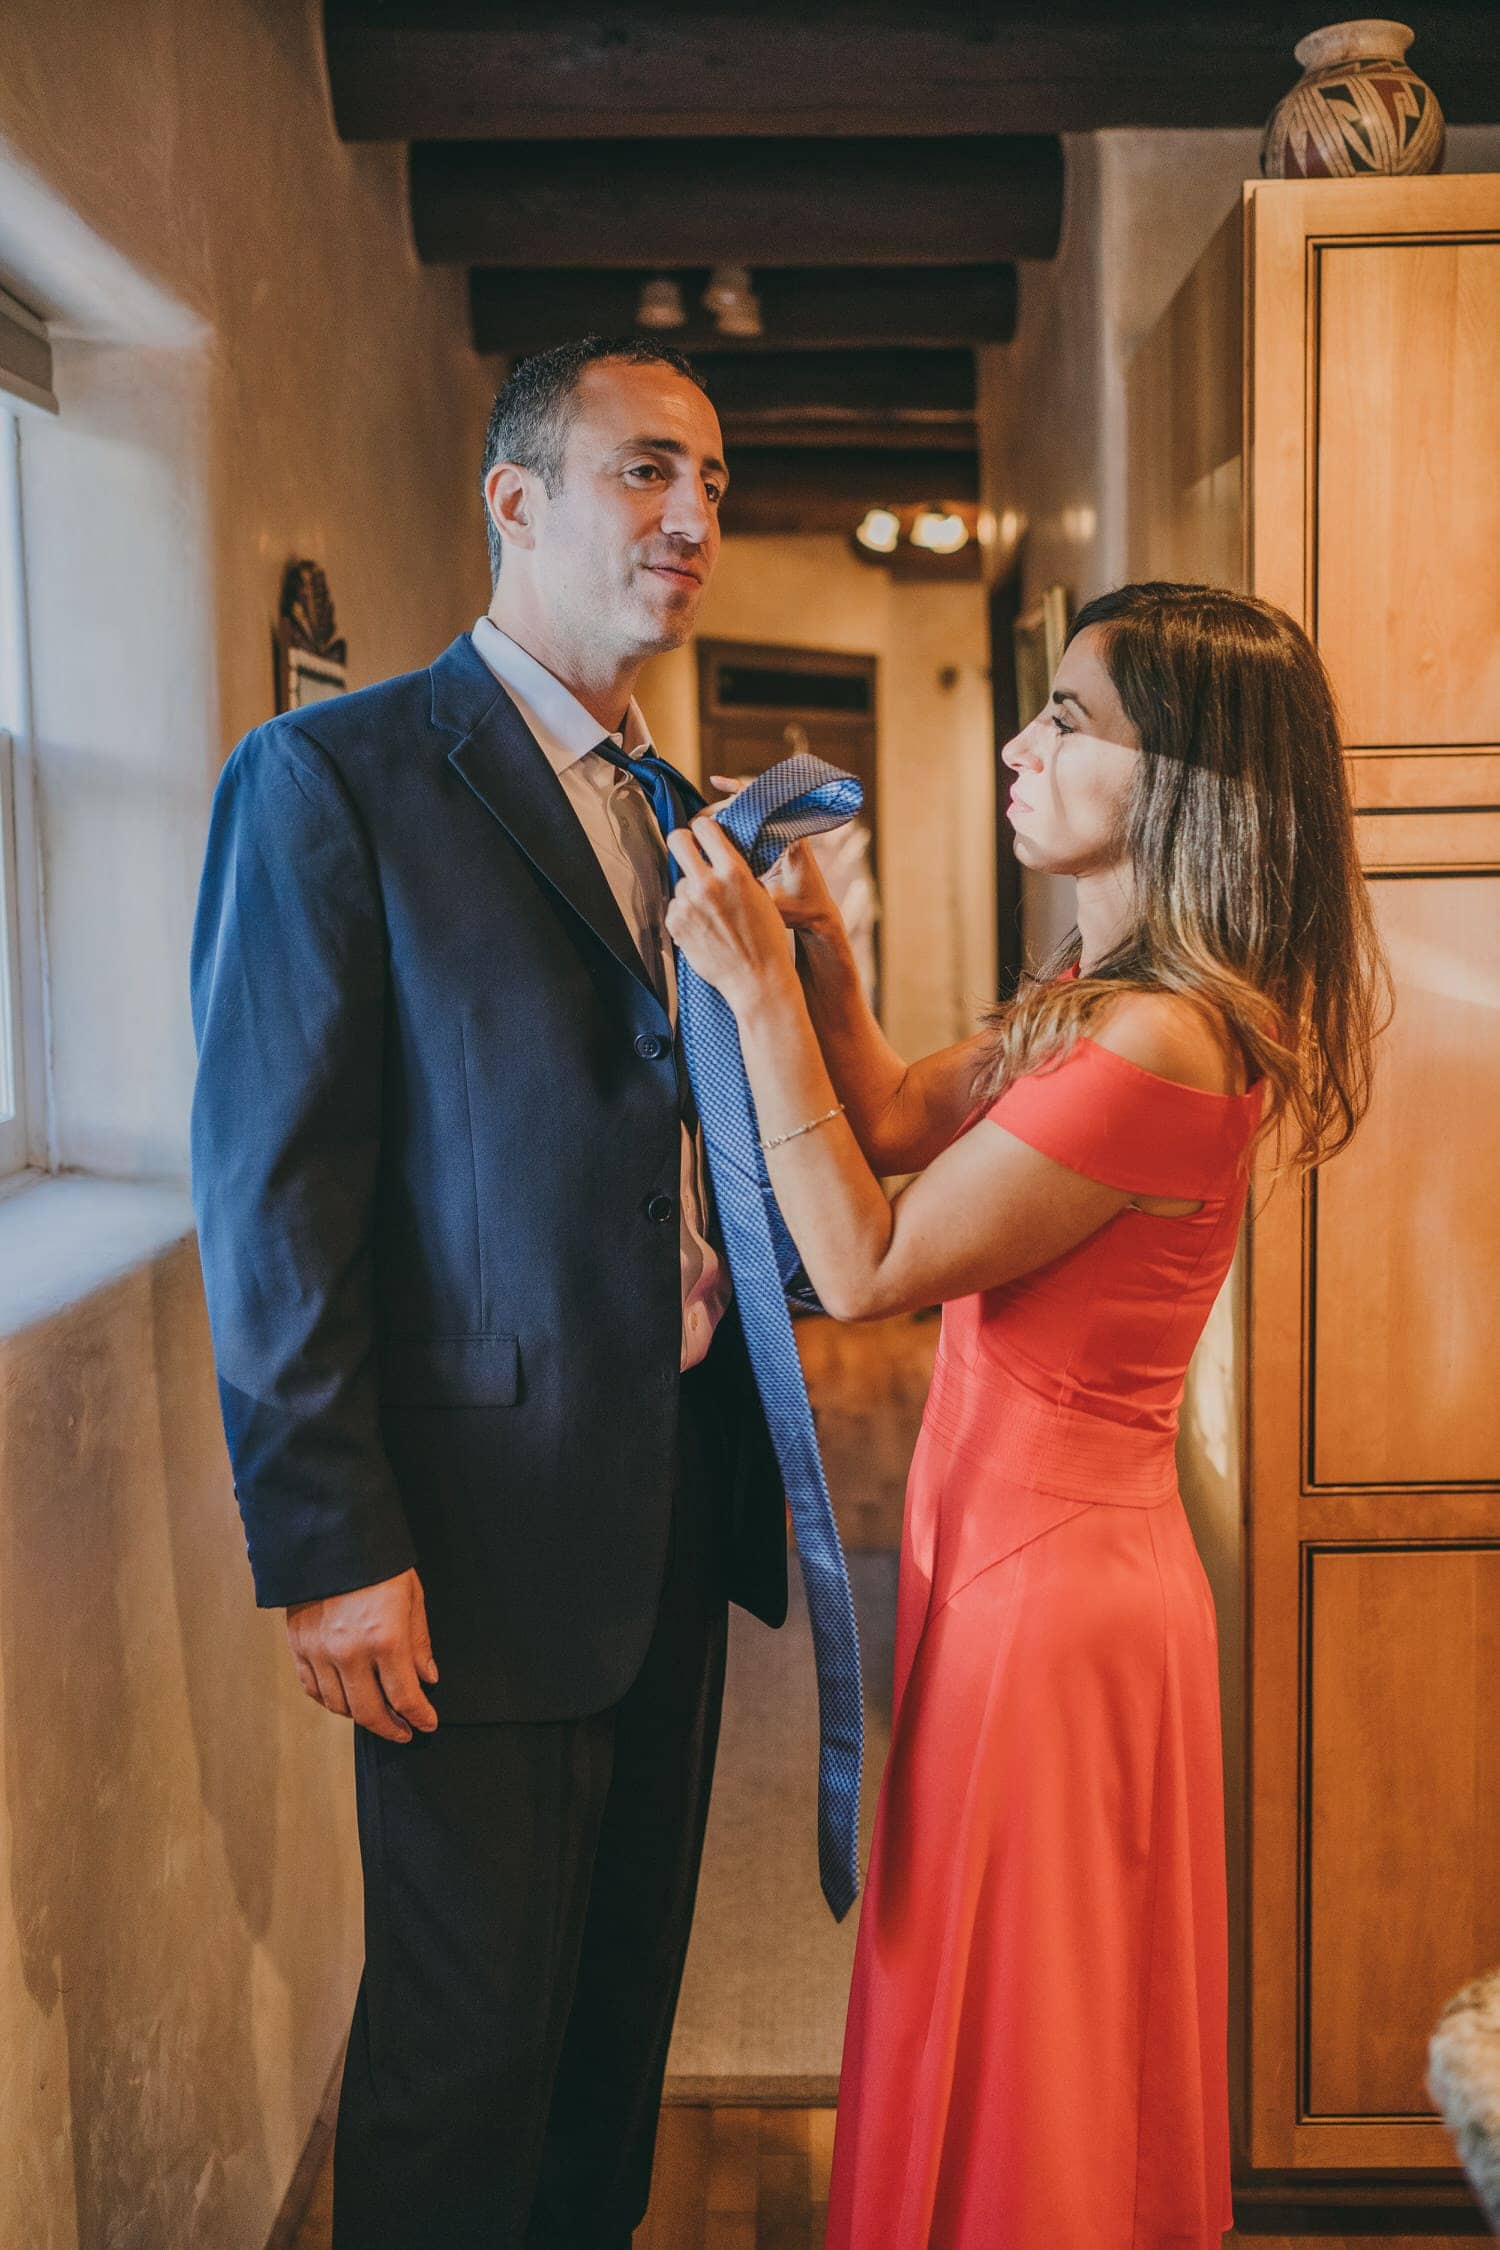 Groom's sister helping him prepare for his elopement ceremony